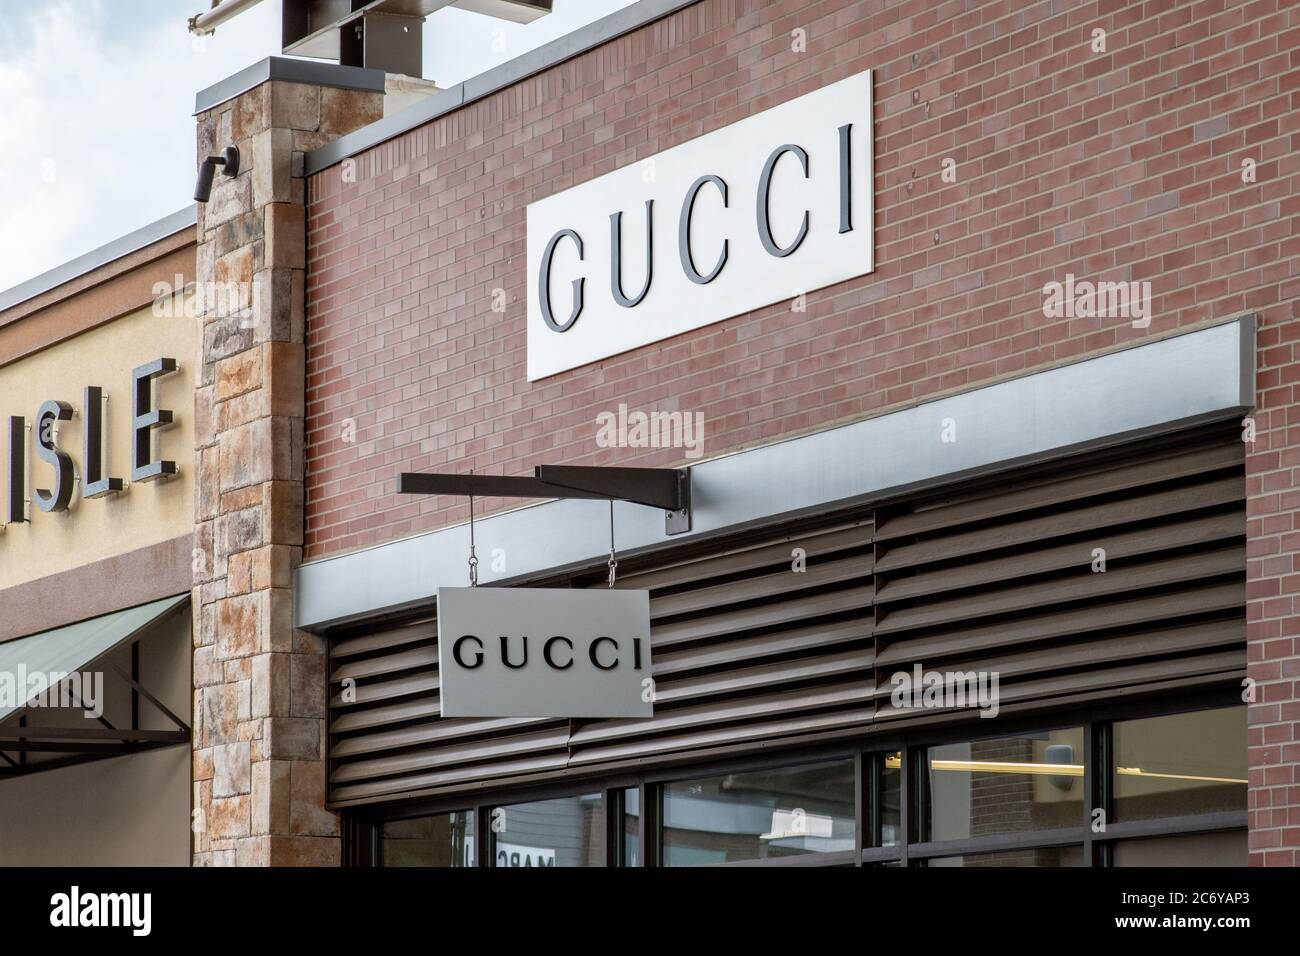 Gucci Group High Resolution Stock Photography And Images Alamy